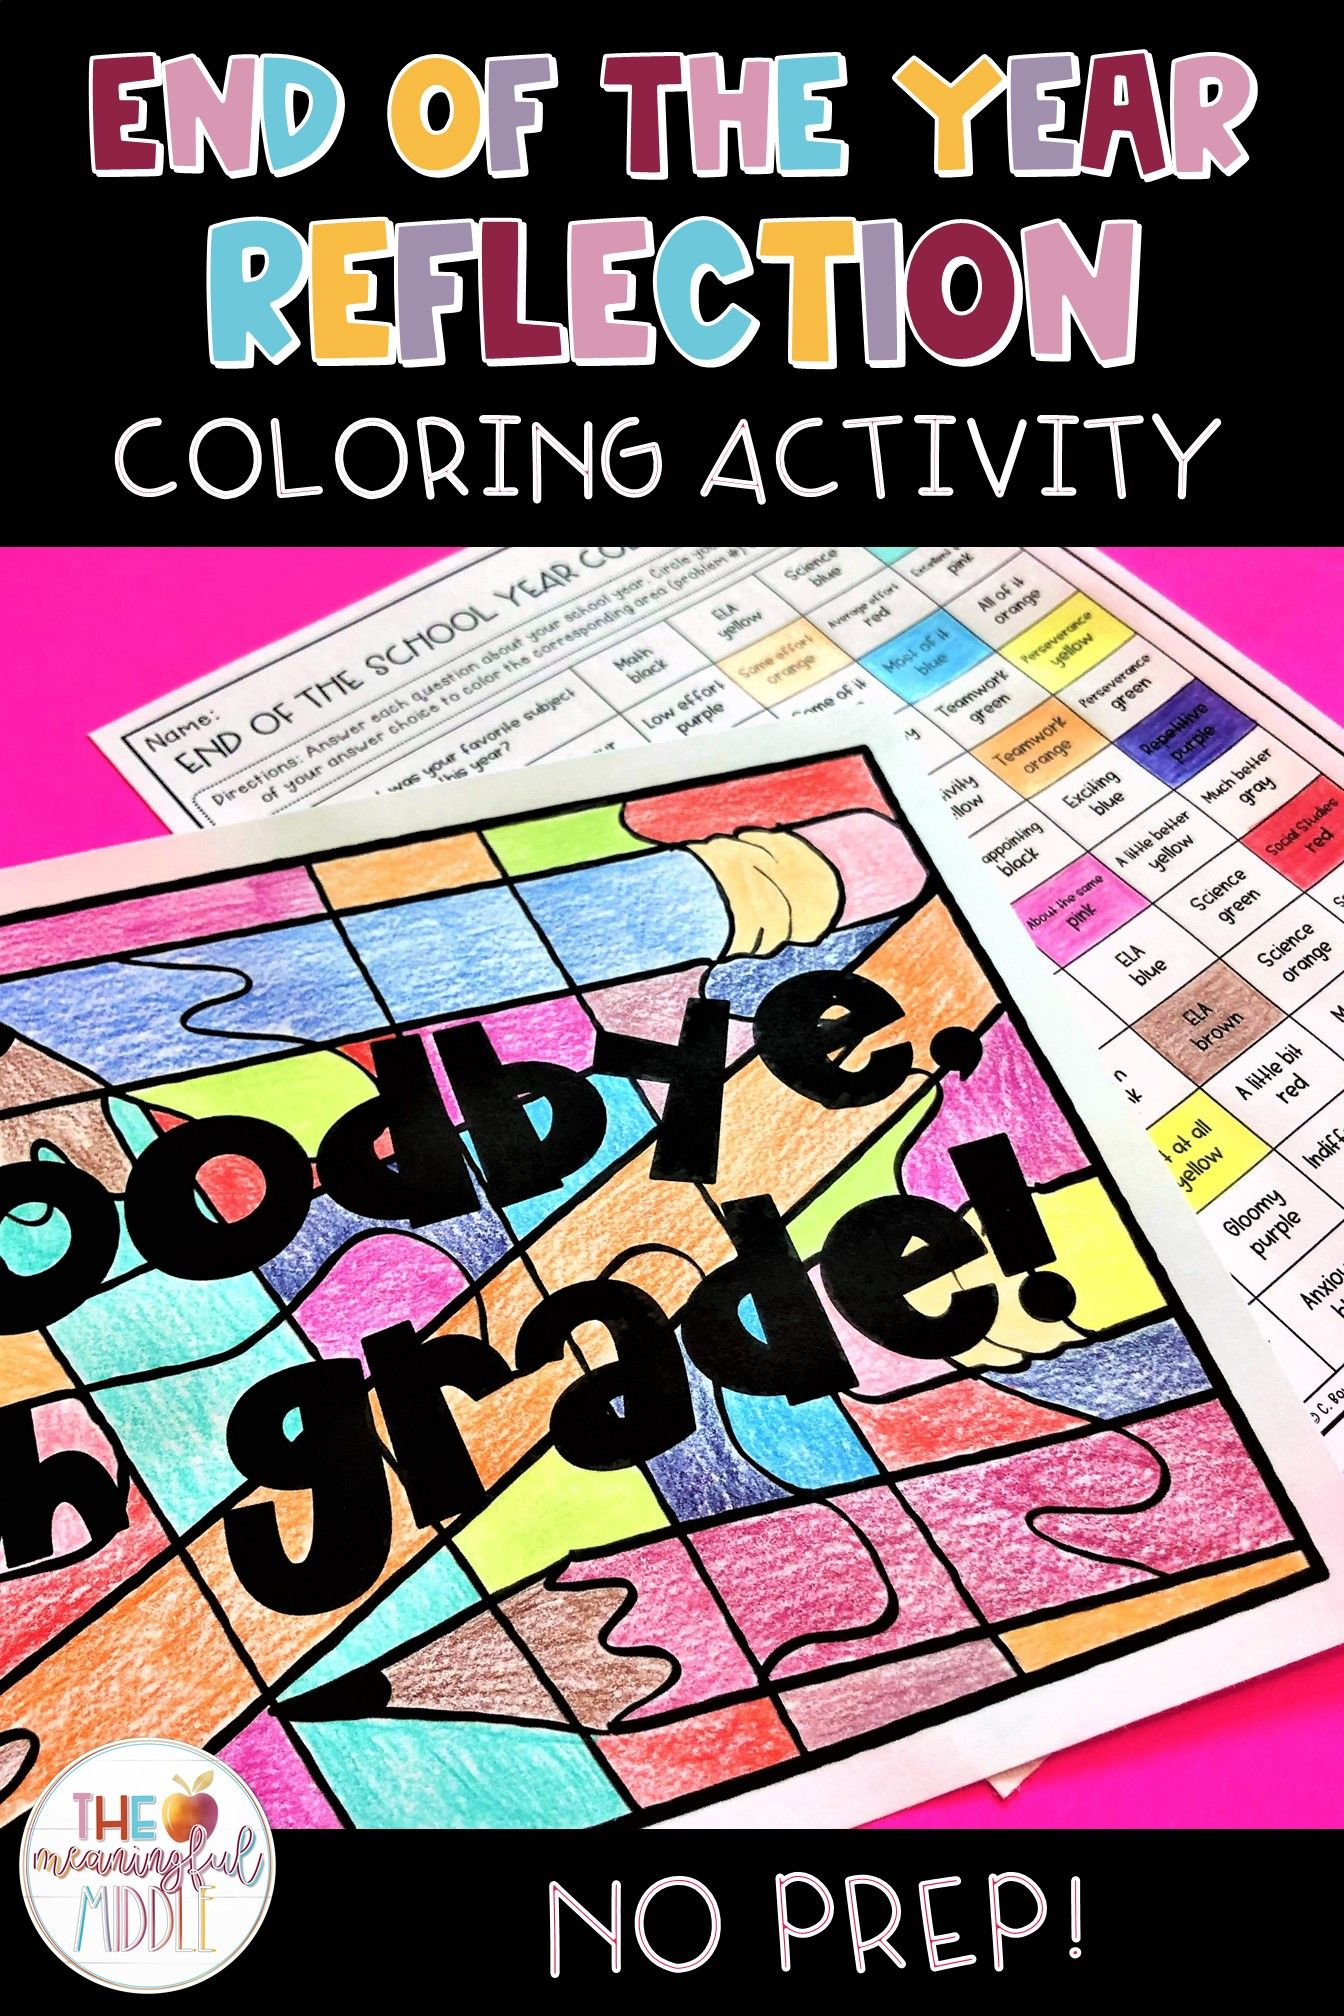 End Of The Year Reflection Coloring Activity